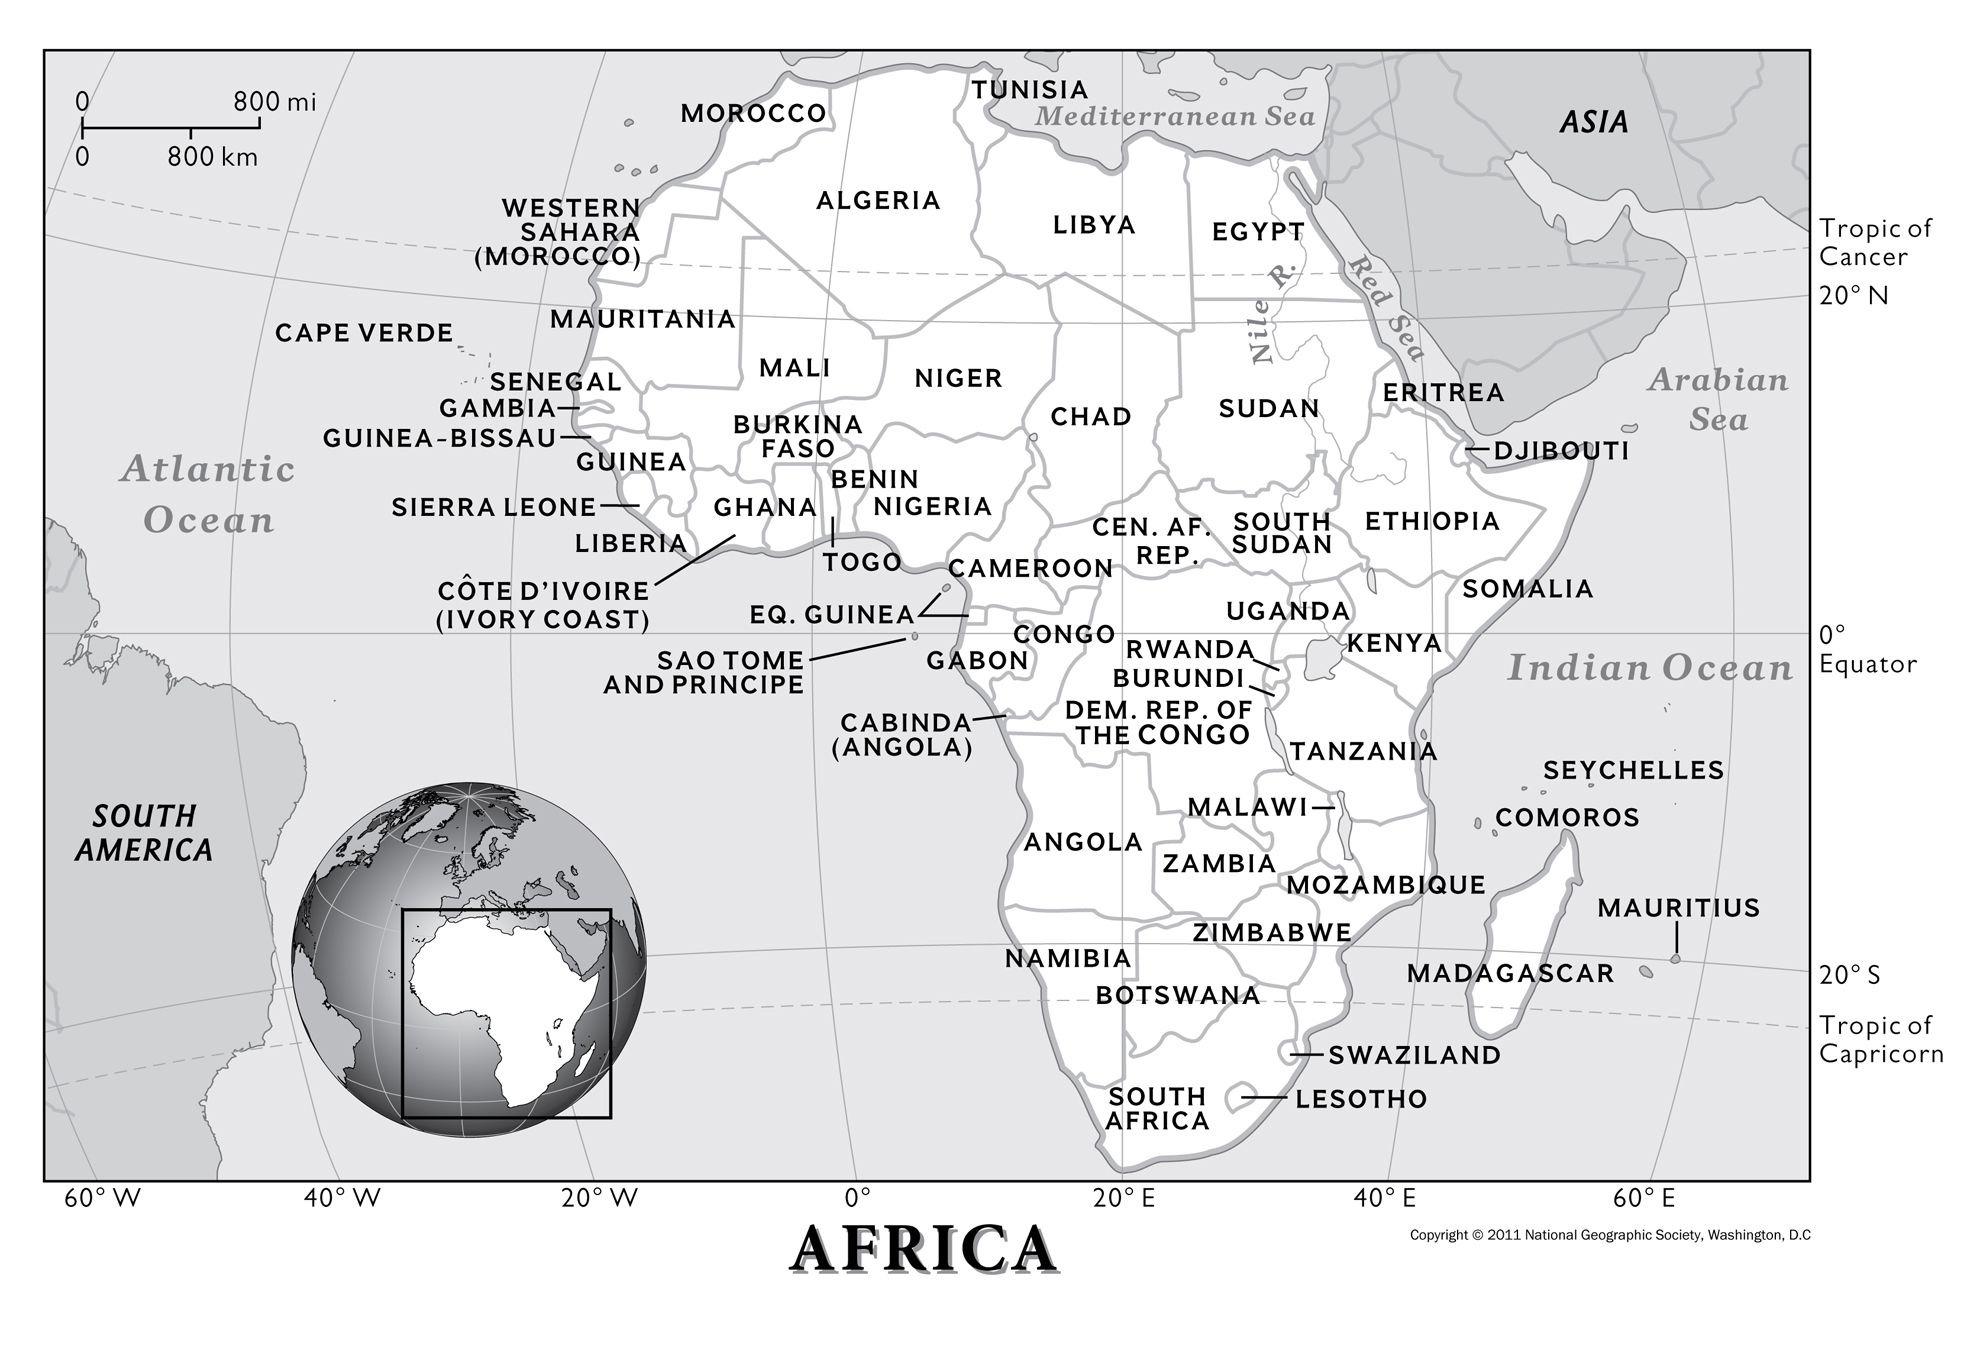 Africa Physical Geography National Geographic Society - The physical world continents and oceans